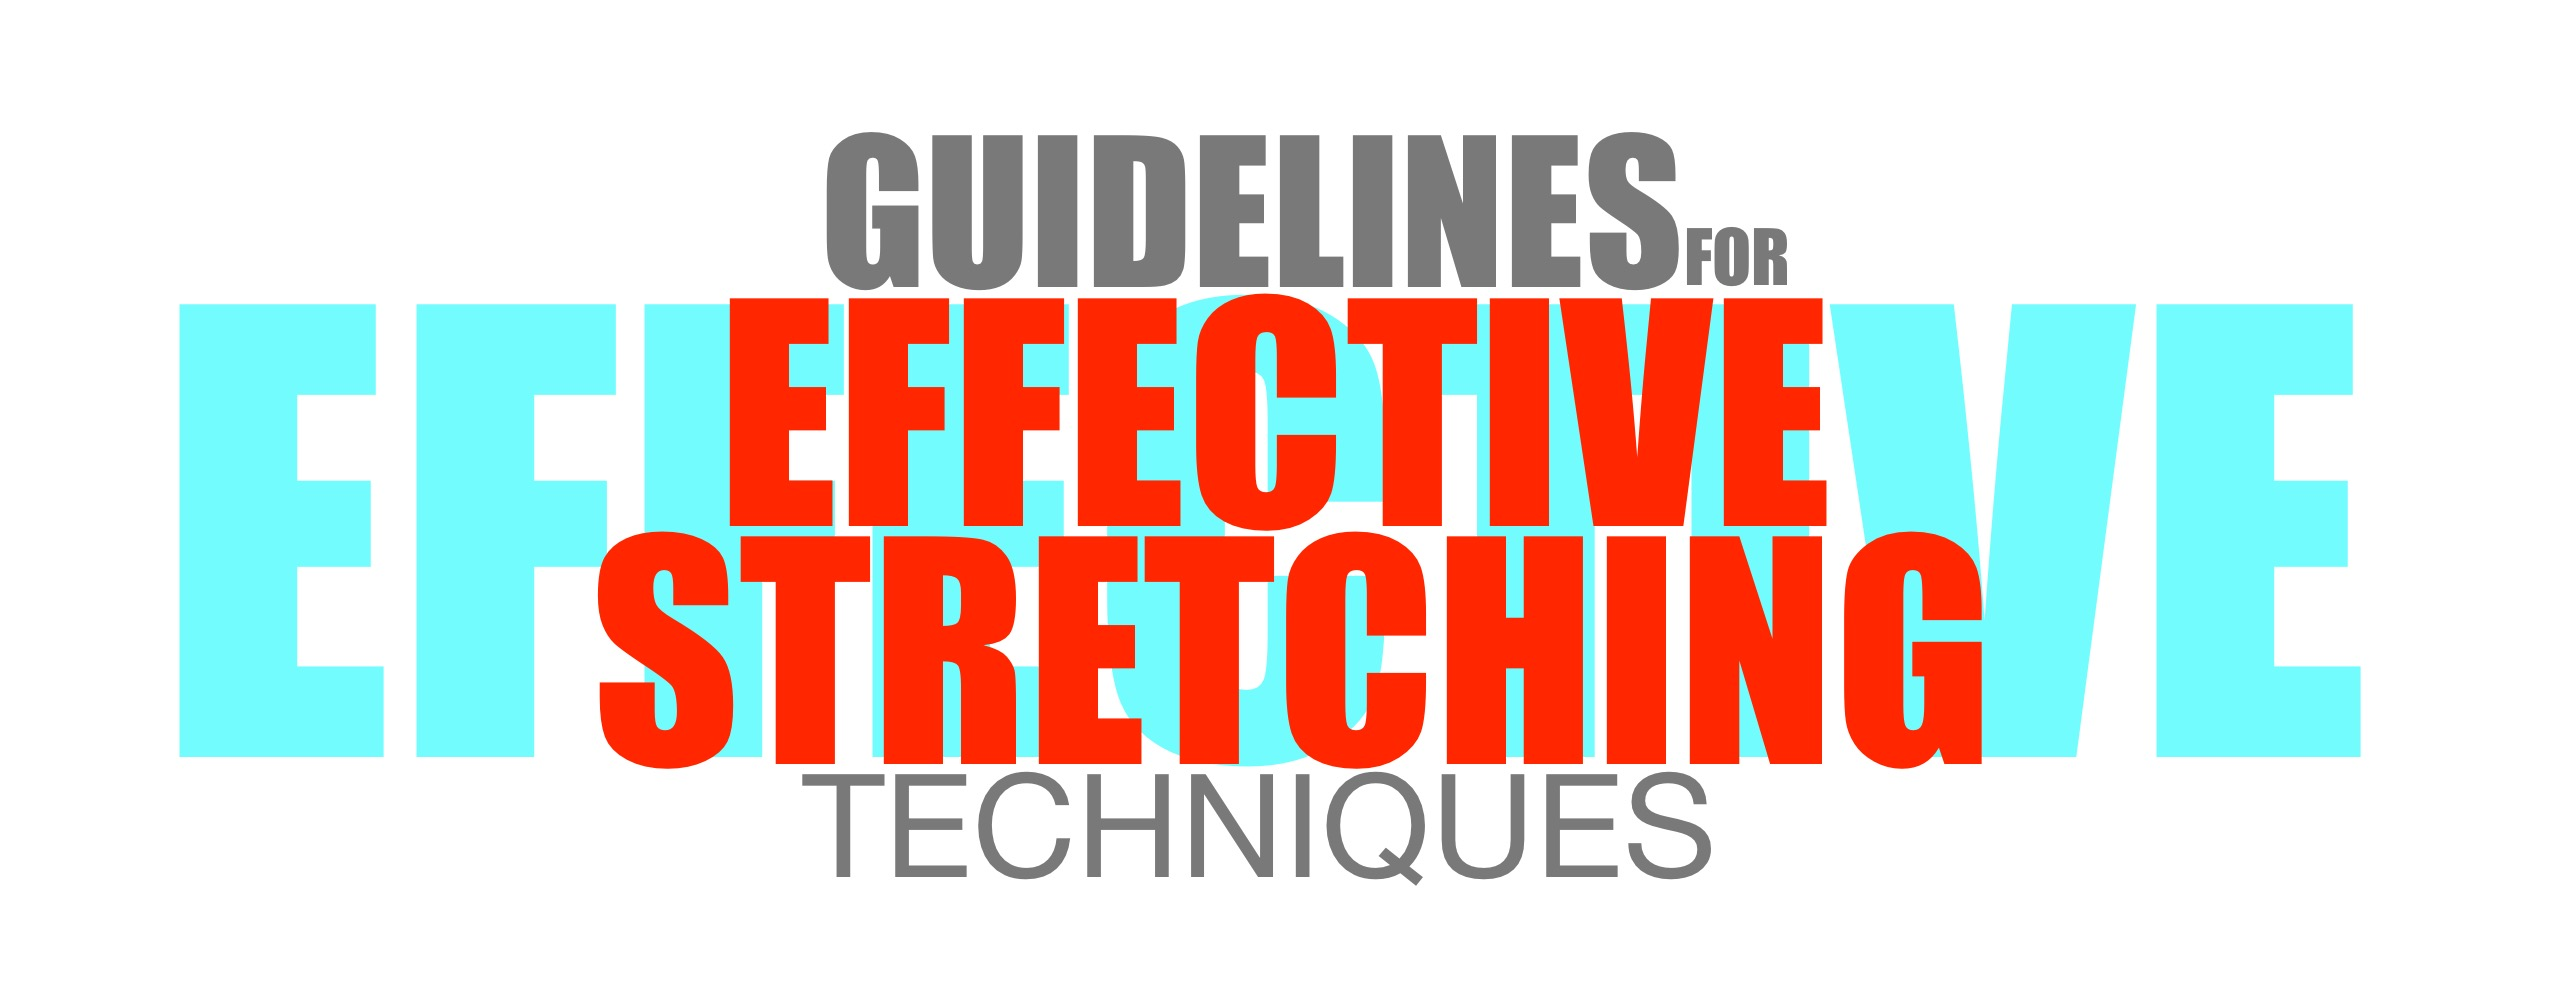 PreHab Exercises - Guidelines for Effective Stretching Techniques